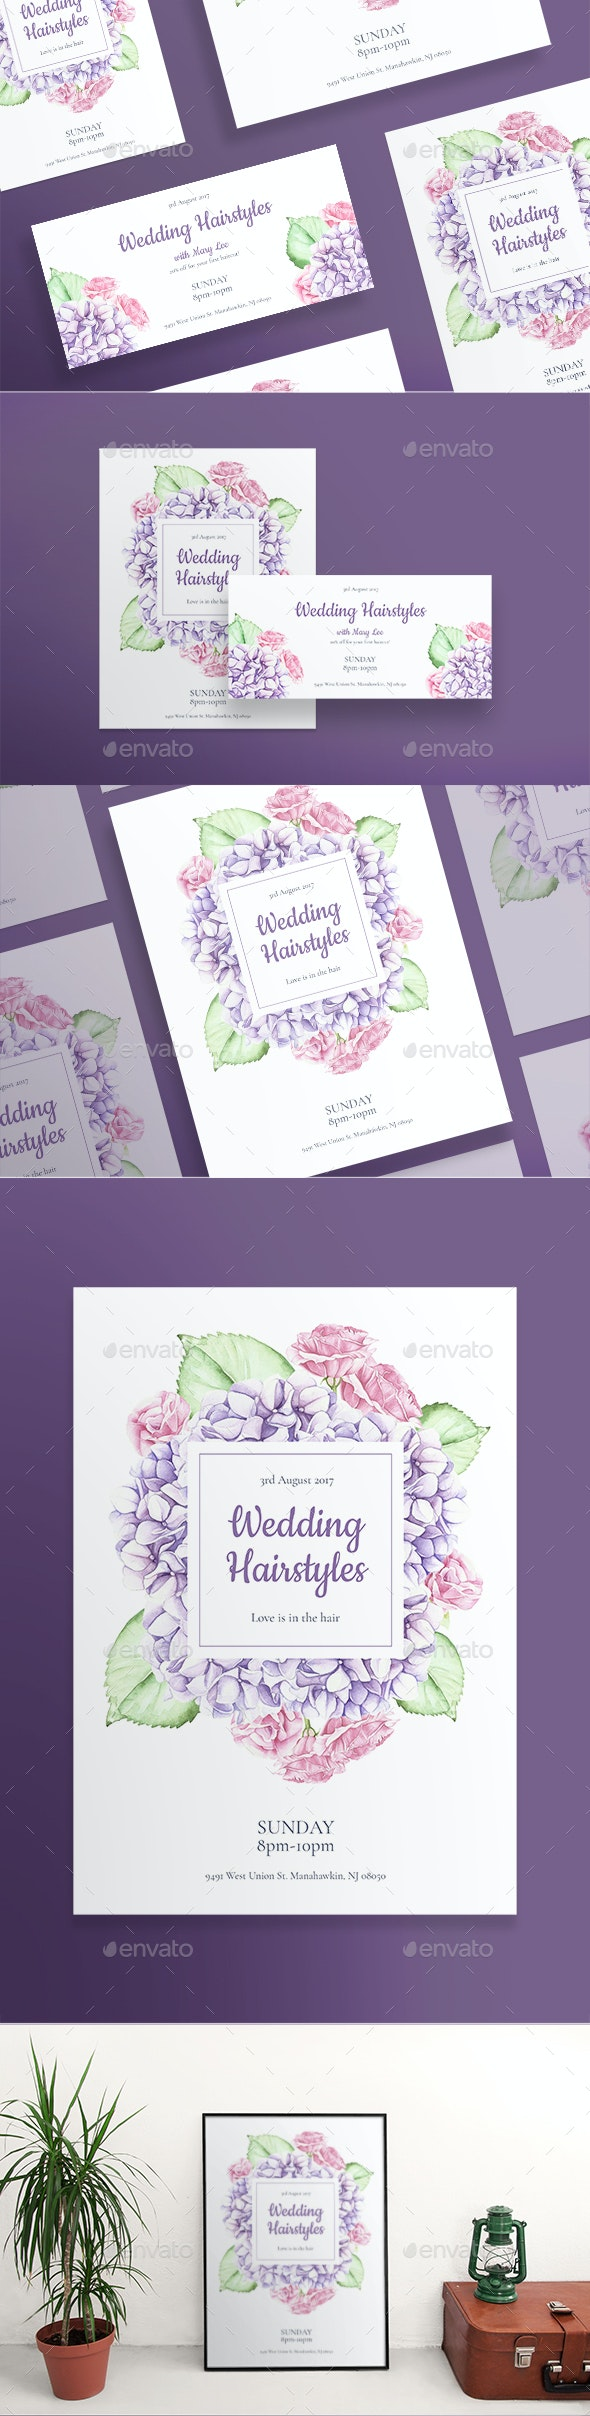 Wedding Hairstyles Flyers - Holidays Events